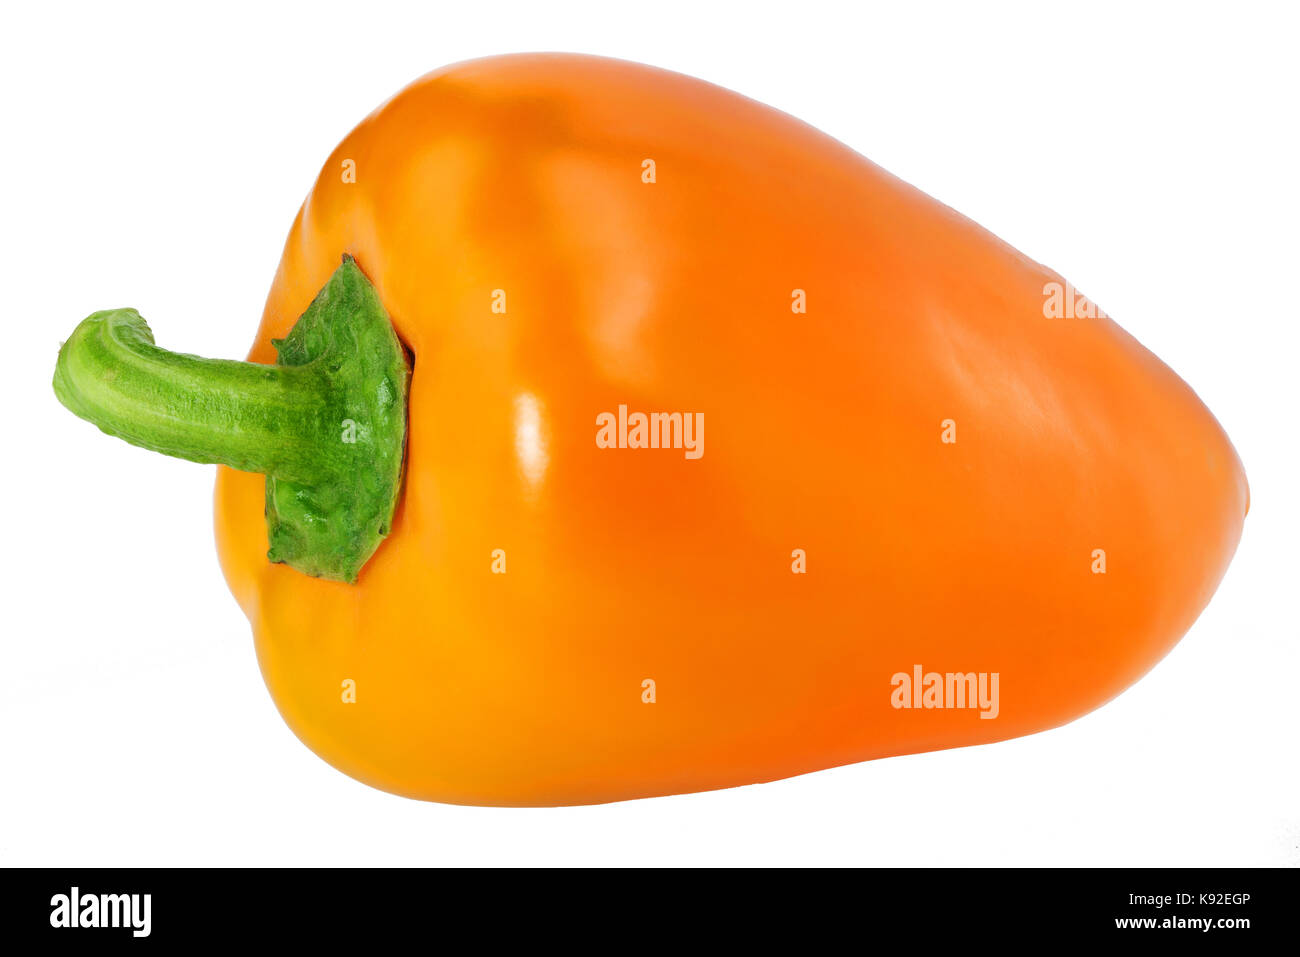 An orange pepper, isolated on white clipping path - Stock Image